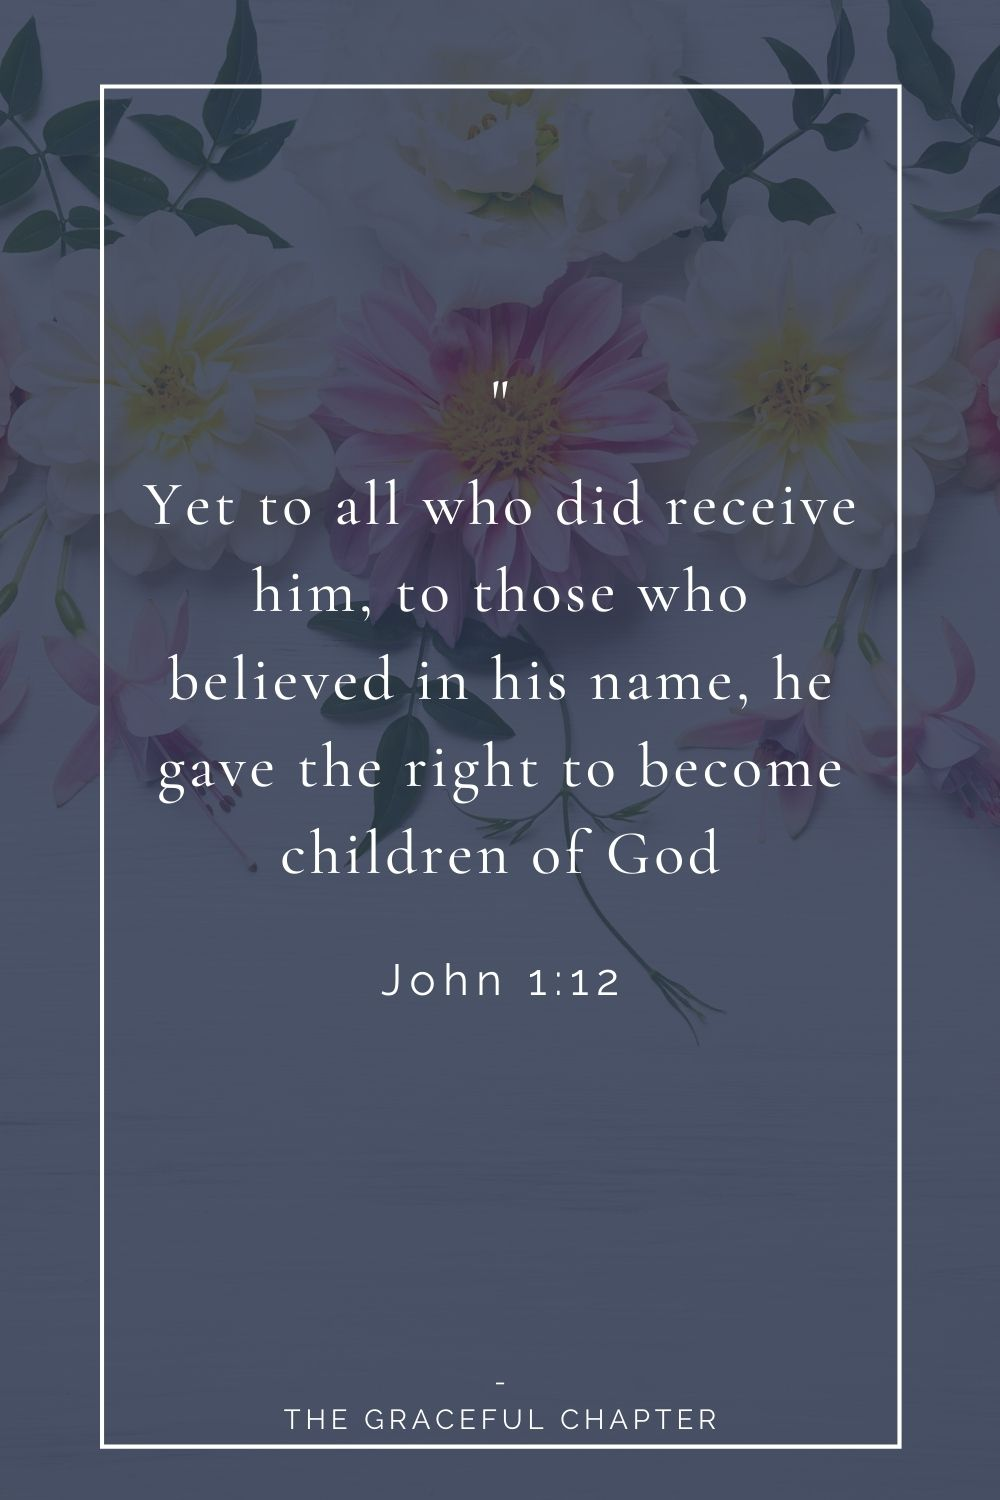 Yet to all who did receive him, to those who believed in his name, he gave the right to become children of God. John 1:12